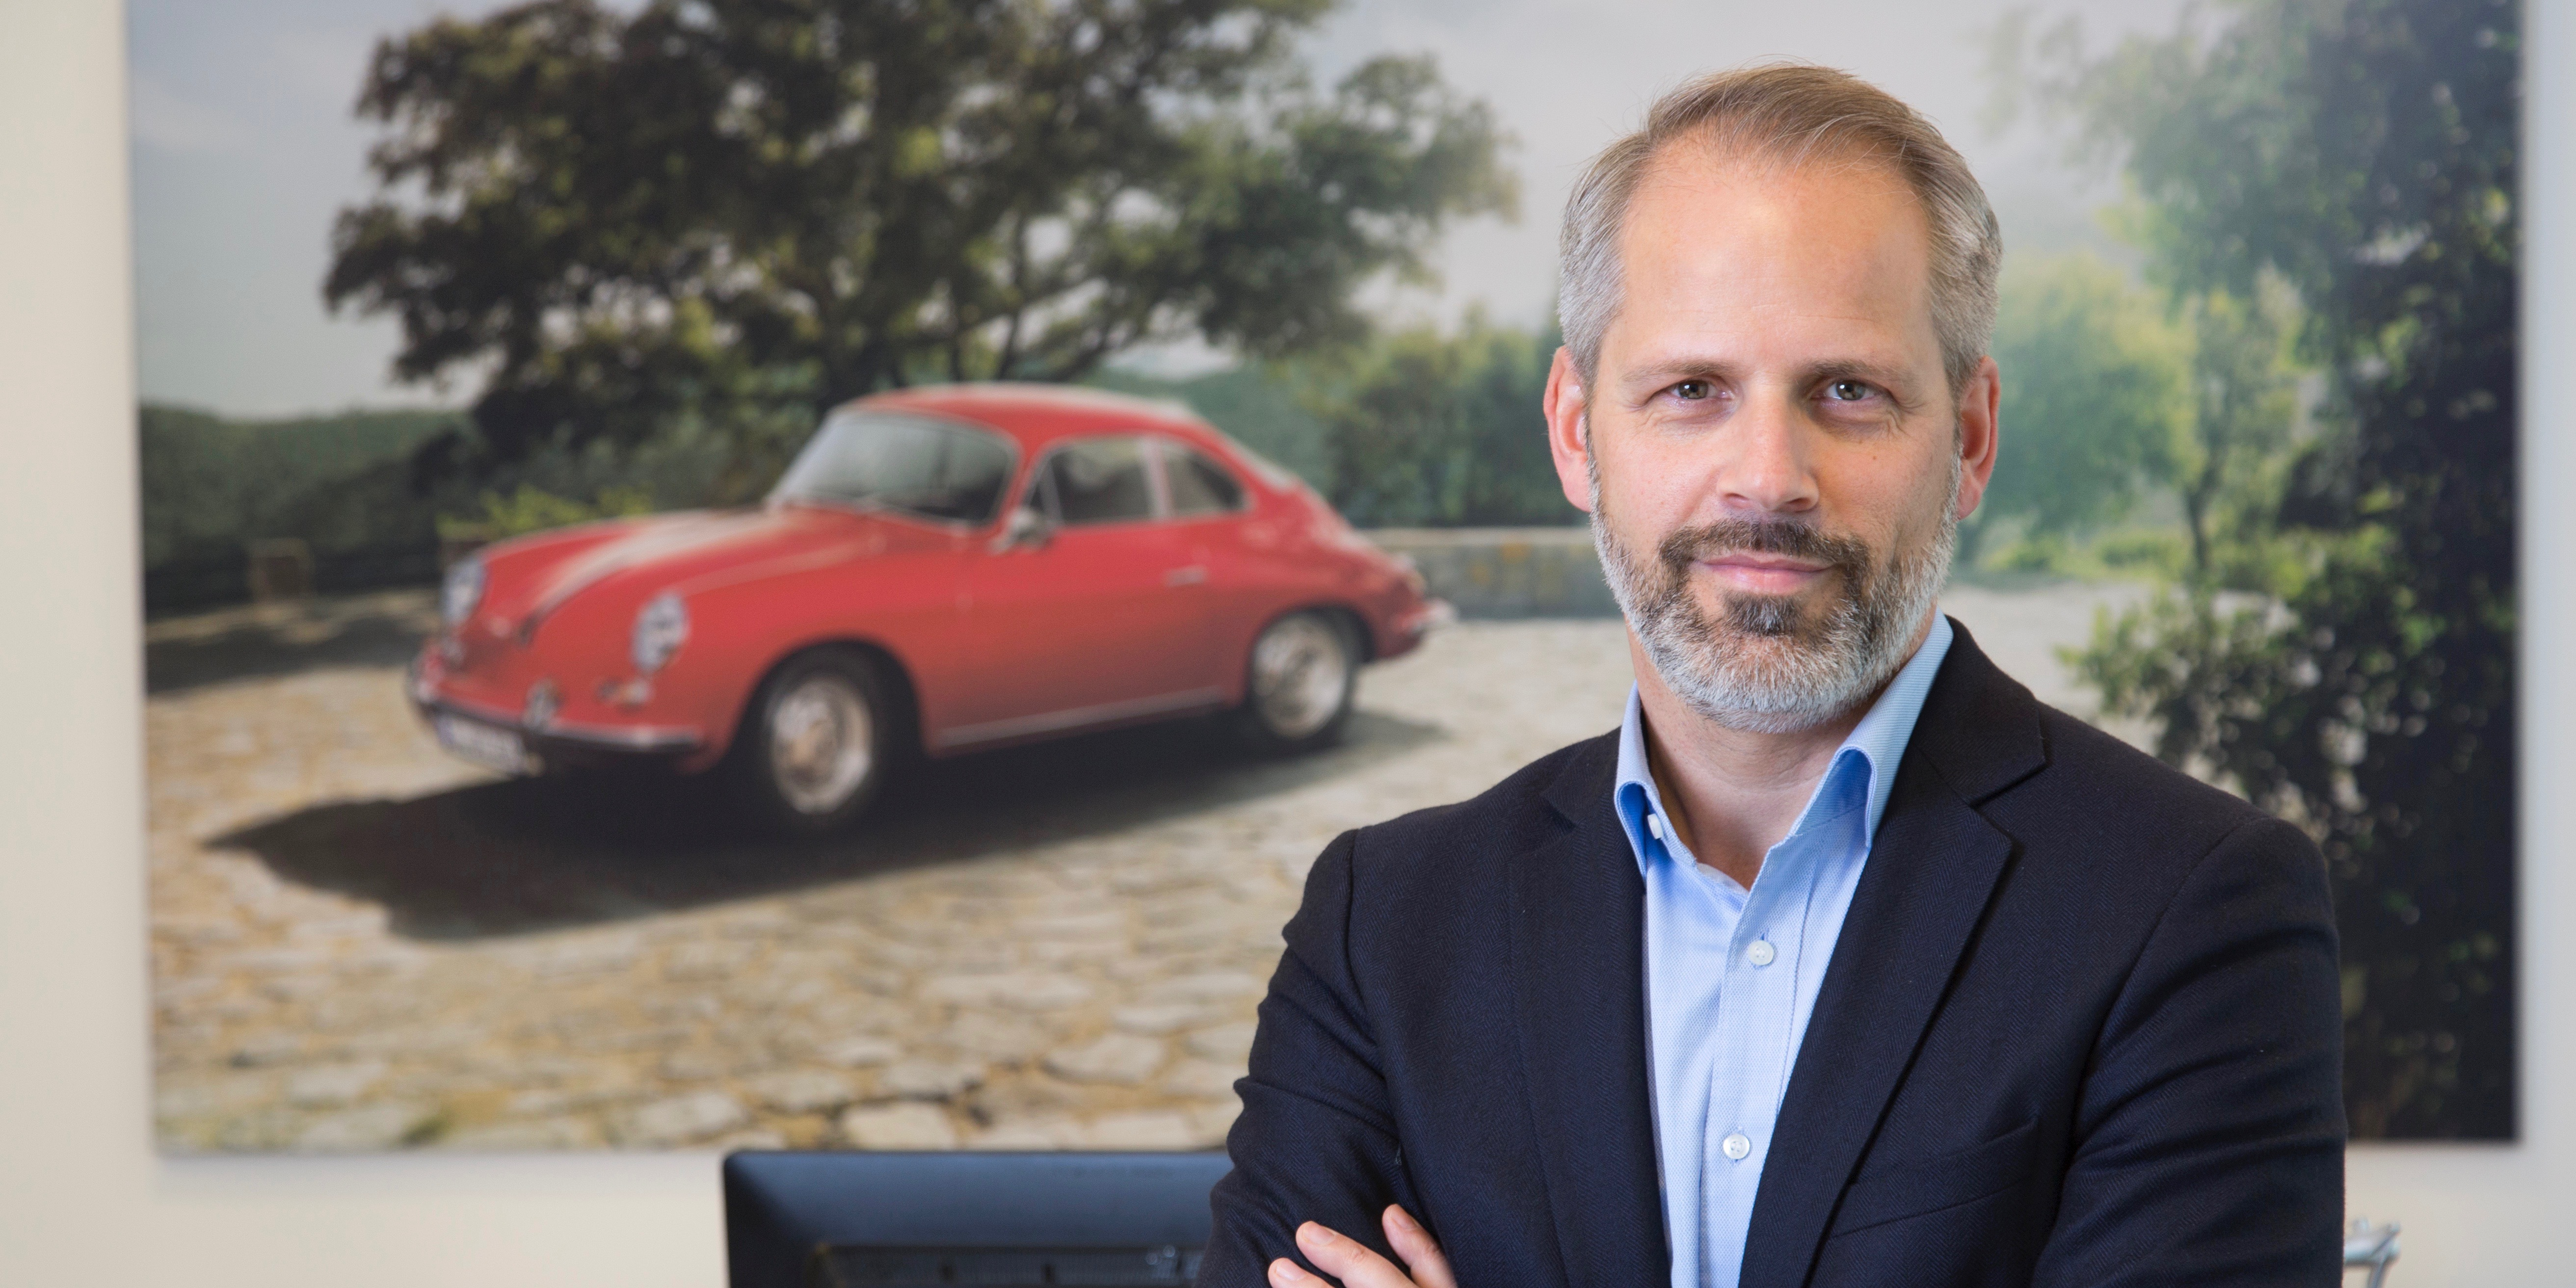 Frank Moser, Head of Corporate Quality at Porsche, 2019, Porsche AG